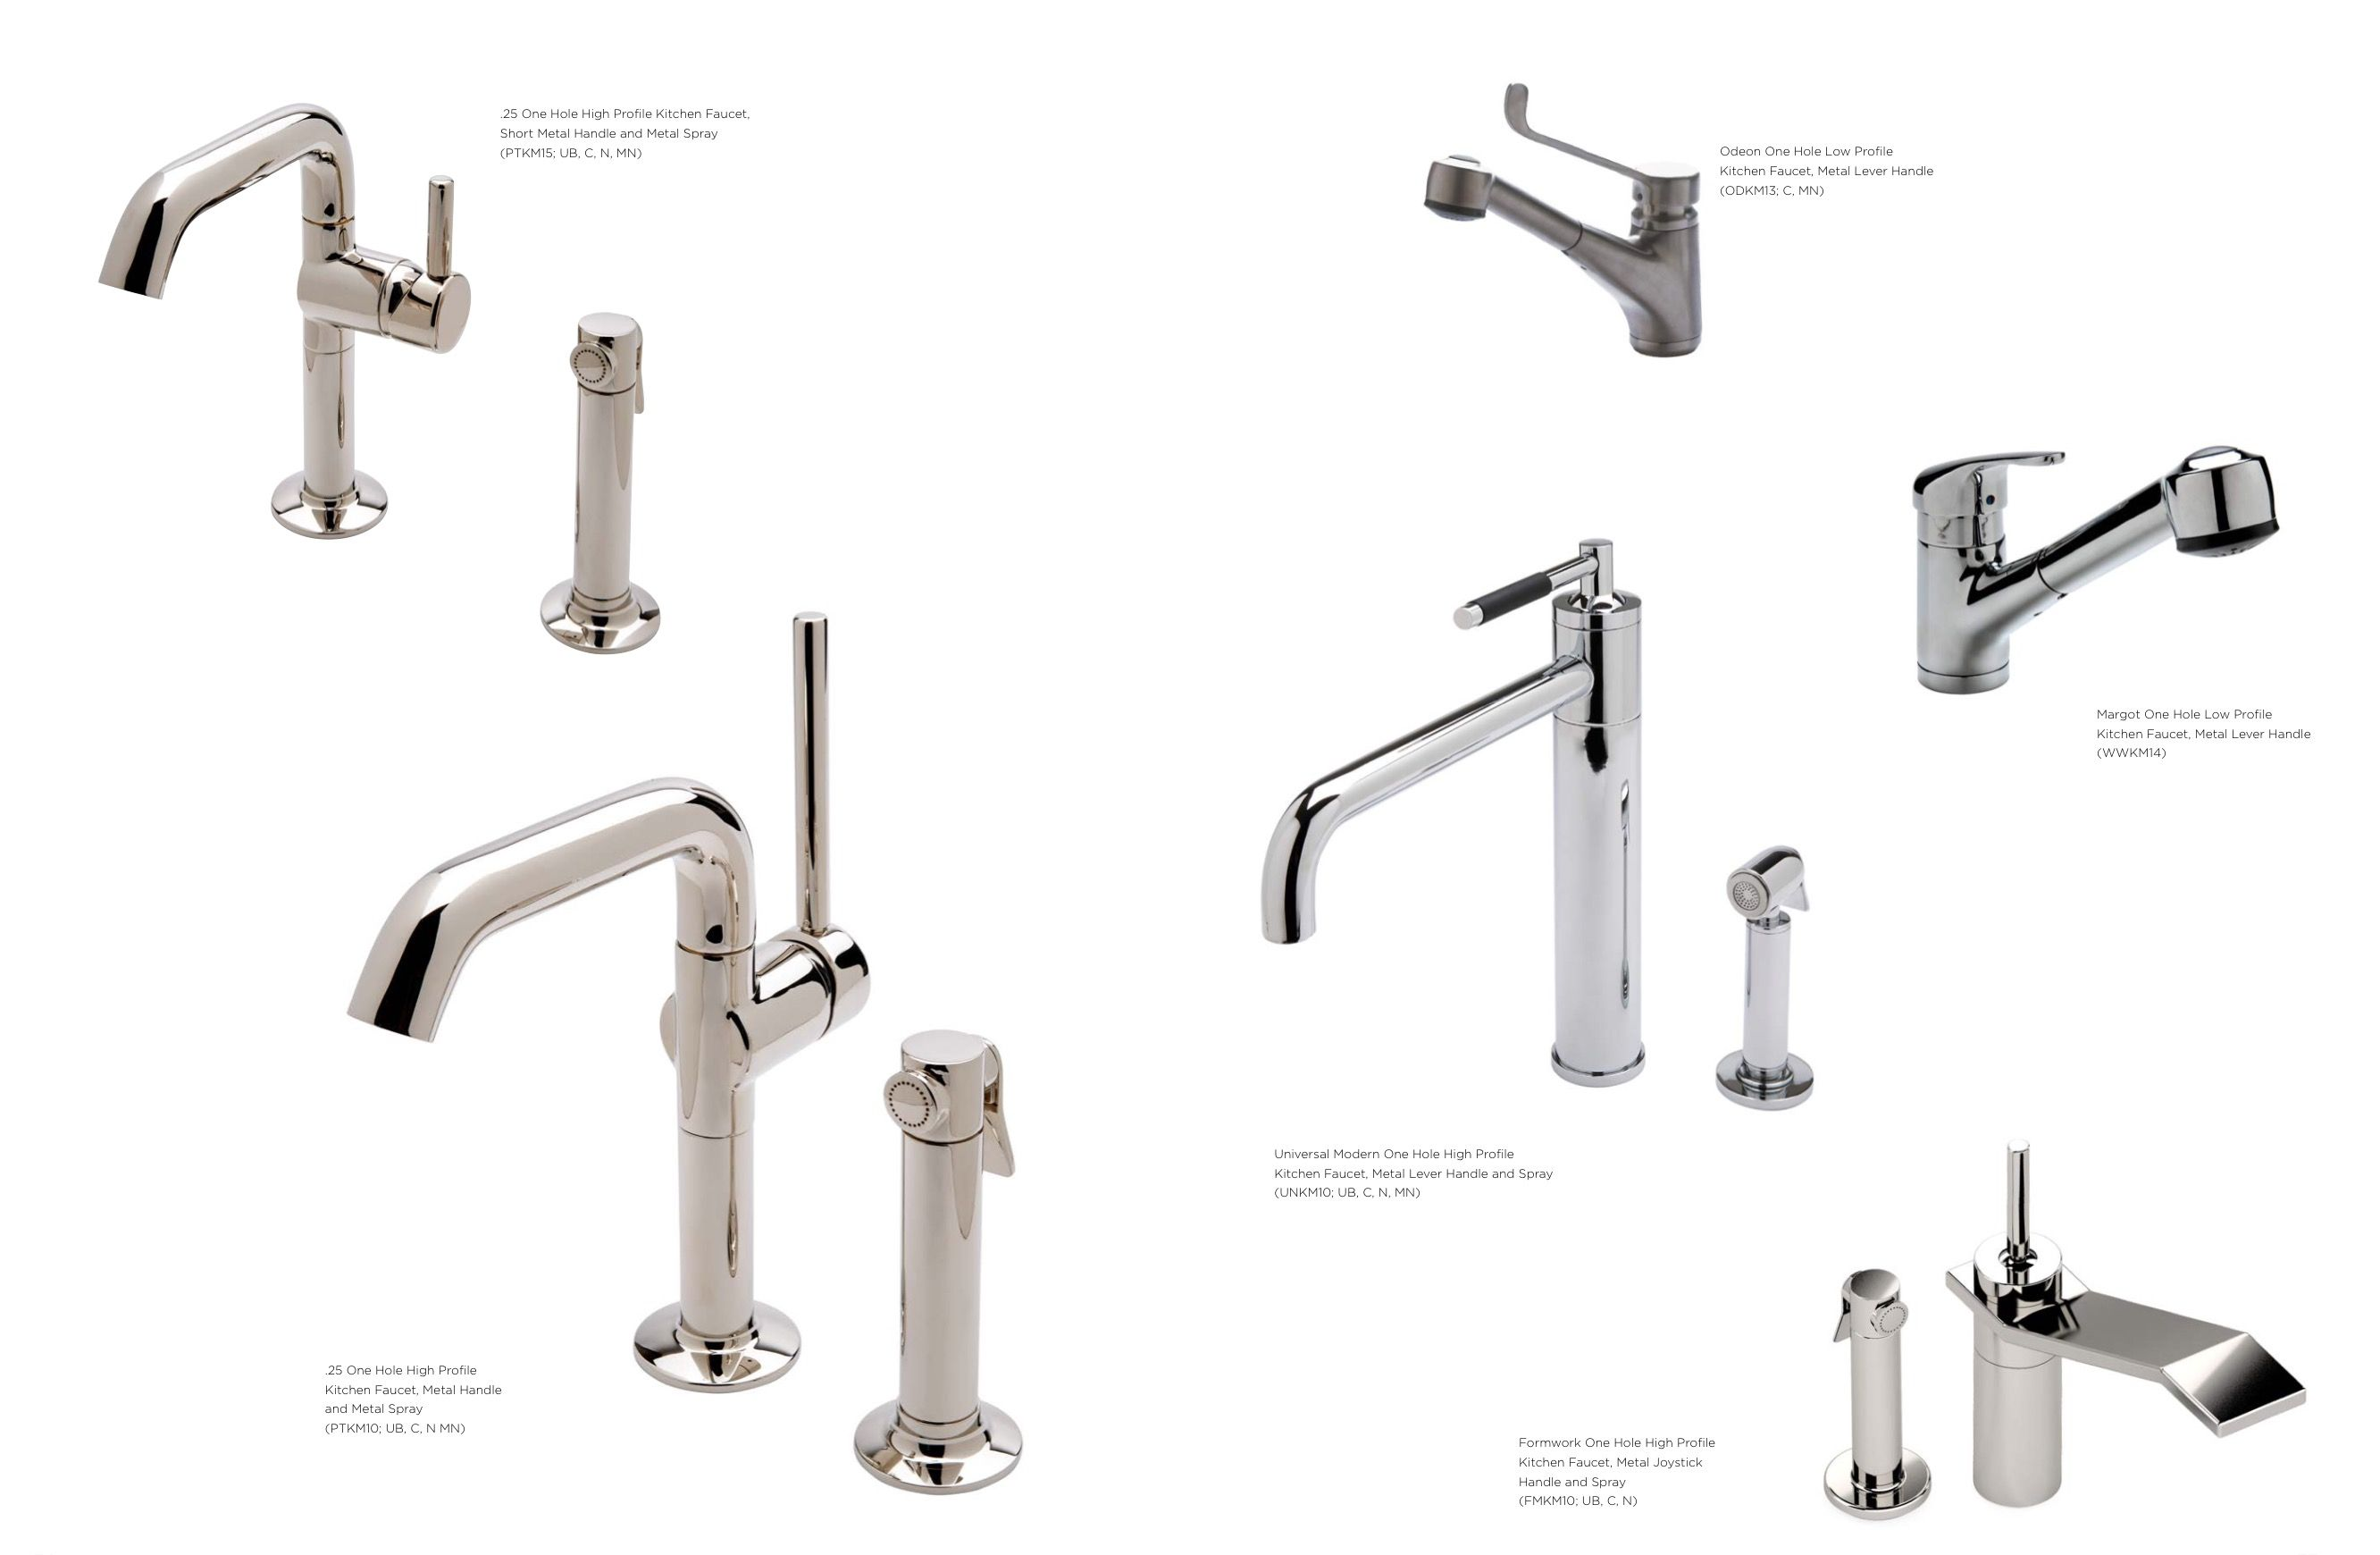 Pin by AMSA Showroom on Waterworks Kitchen & Bar Fixtures